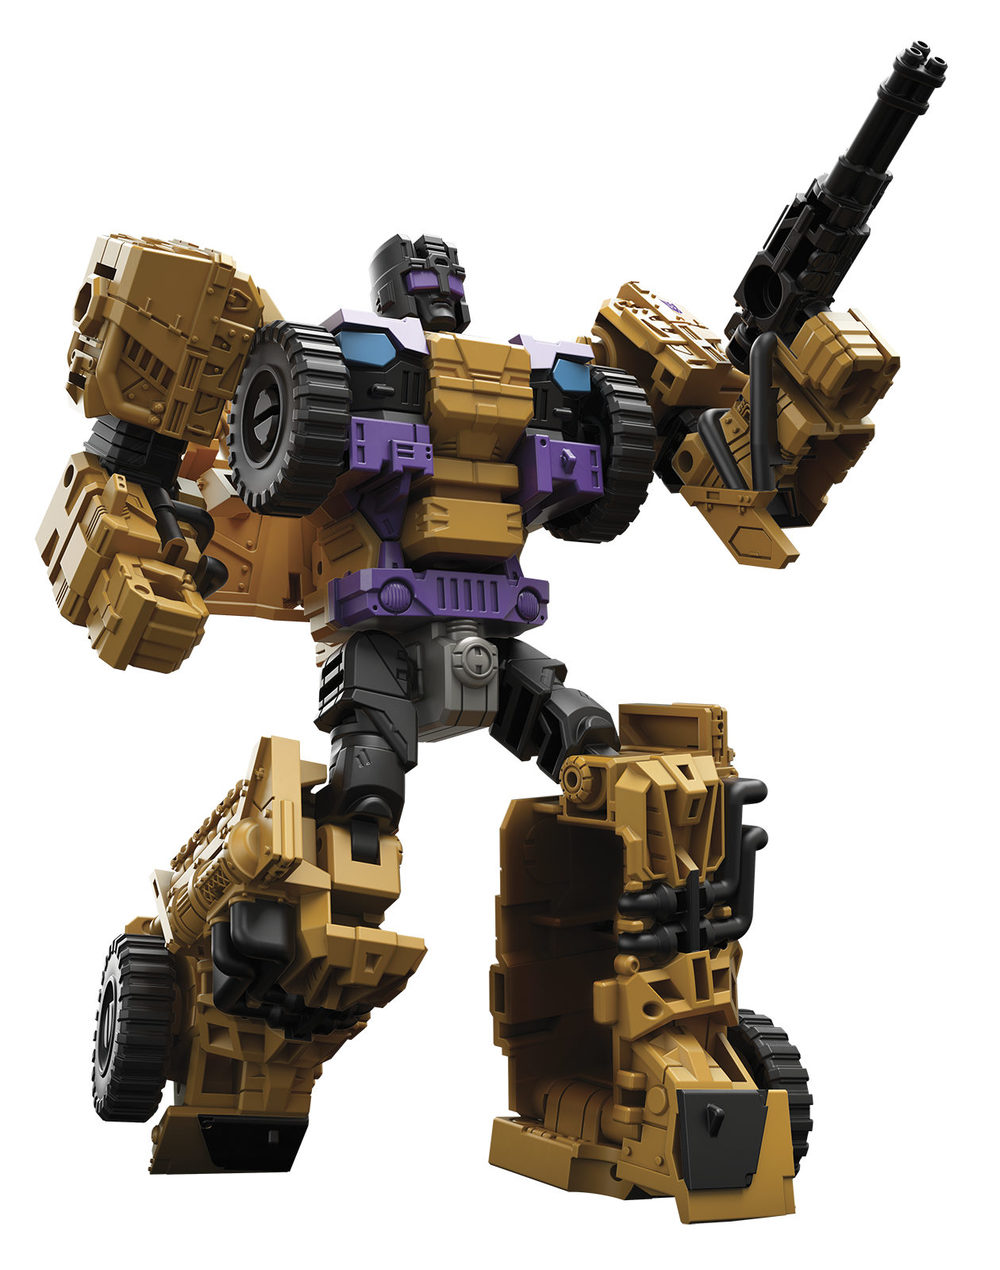 Deluxe_Swindle_Bot_v2.jpg